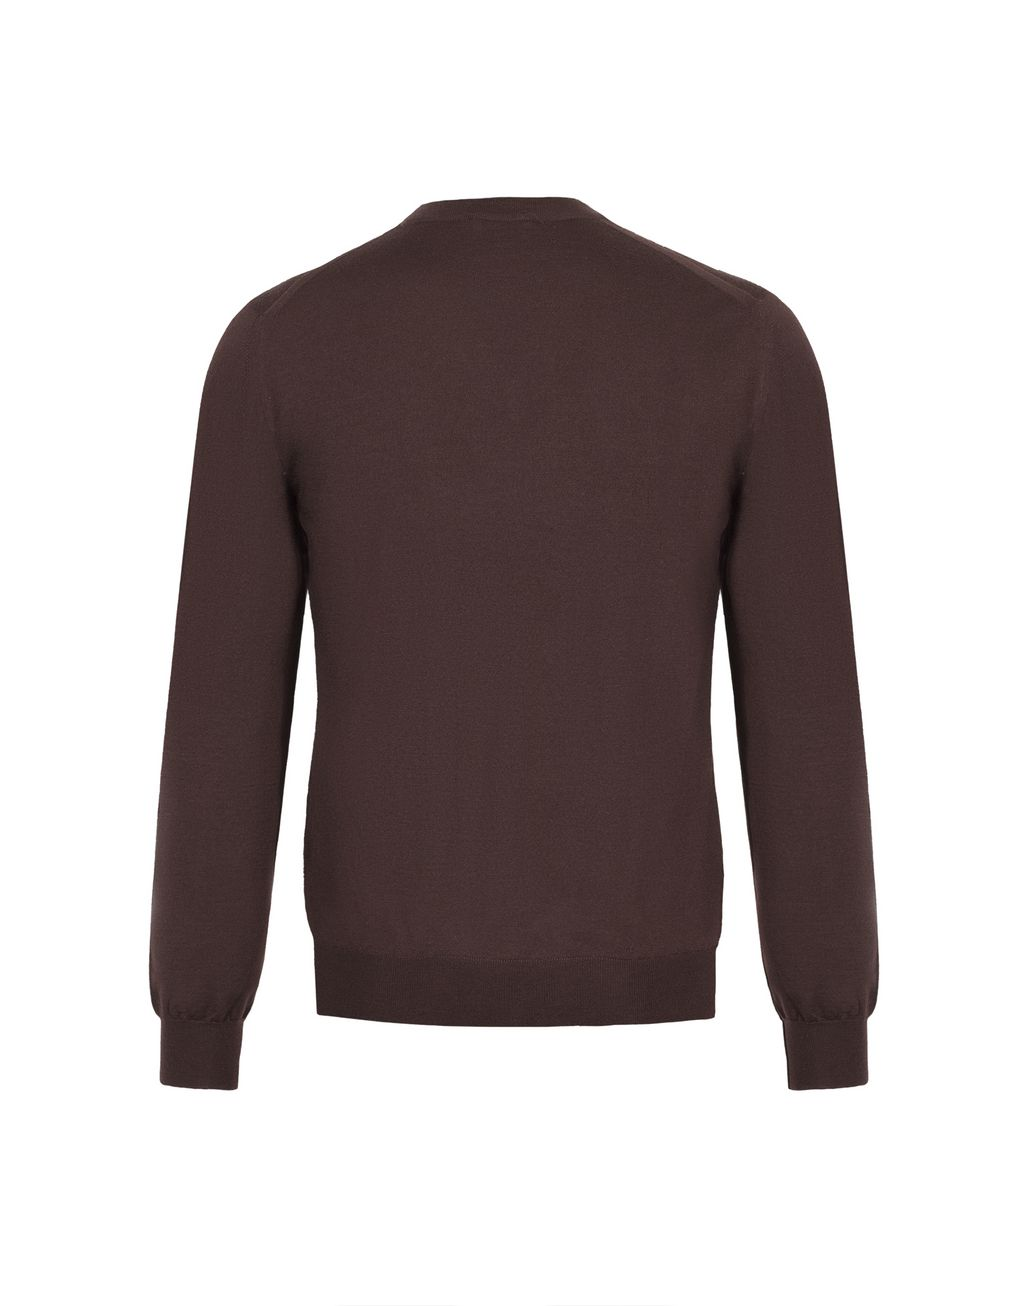 BRIONI Chocolate Brown V- Neck Sweater Knitwear [*** pickupInStoreShippingNotGuaranteed_info ***] d